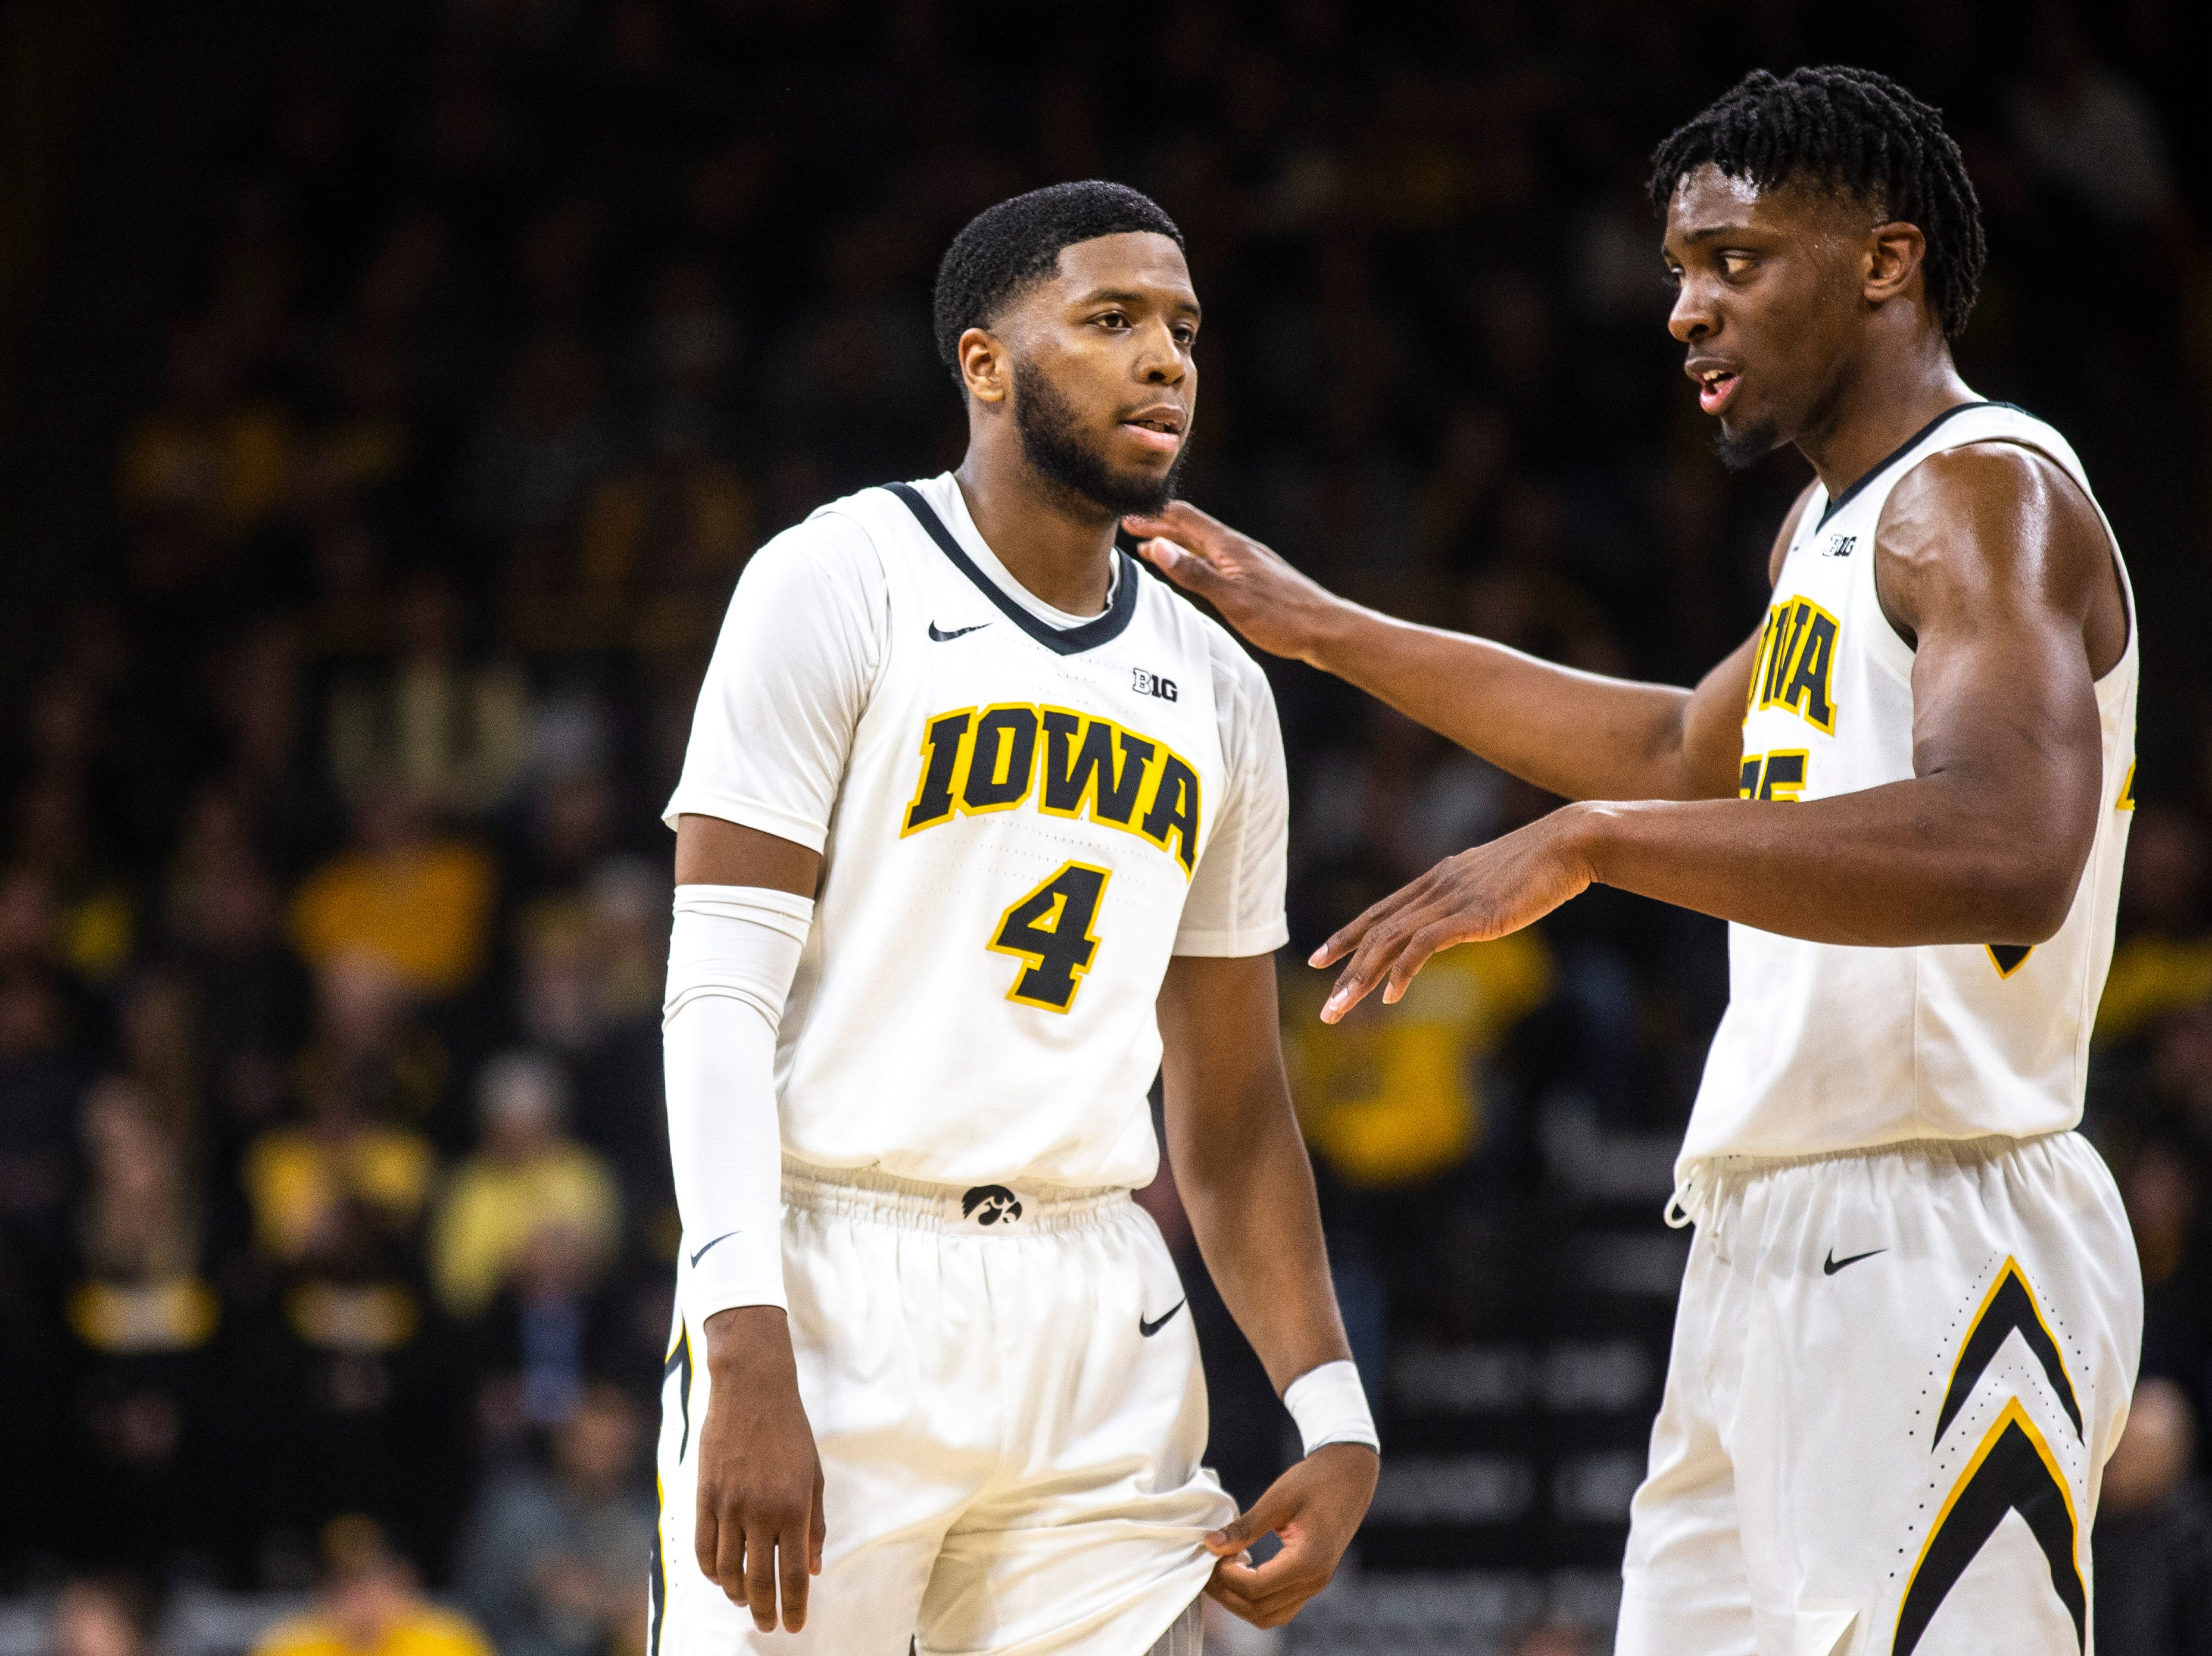 Iowa forward Tyler Cook, right, talks with Iowa guard Isaiah Moss (4) during a NCAA Big Ten Conference men's basketball game on Saturday, March 2, 2019, at Carver-Hawkeye Arena in Iowa City, Iowa.